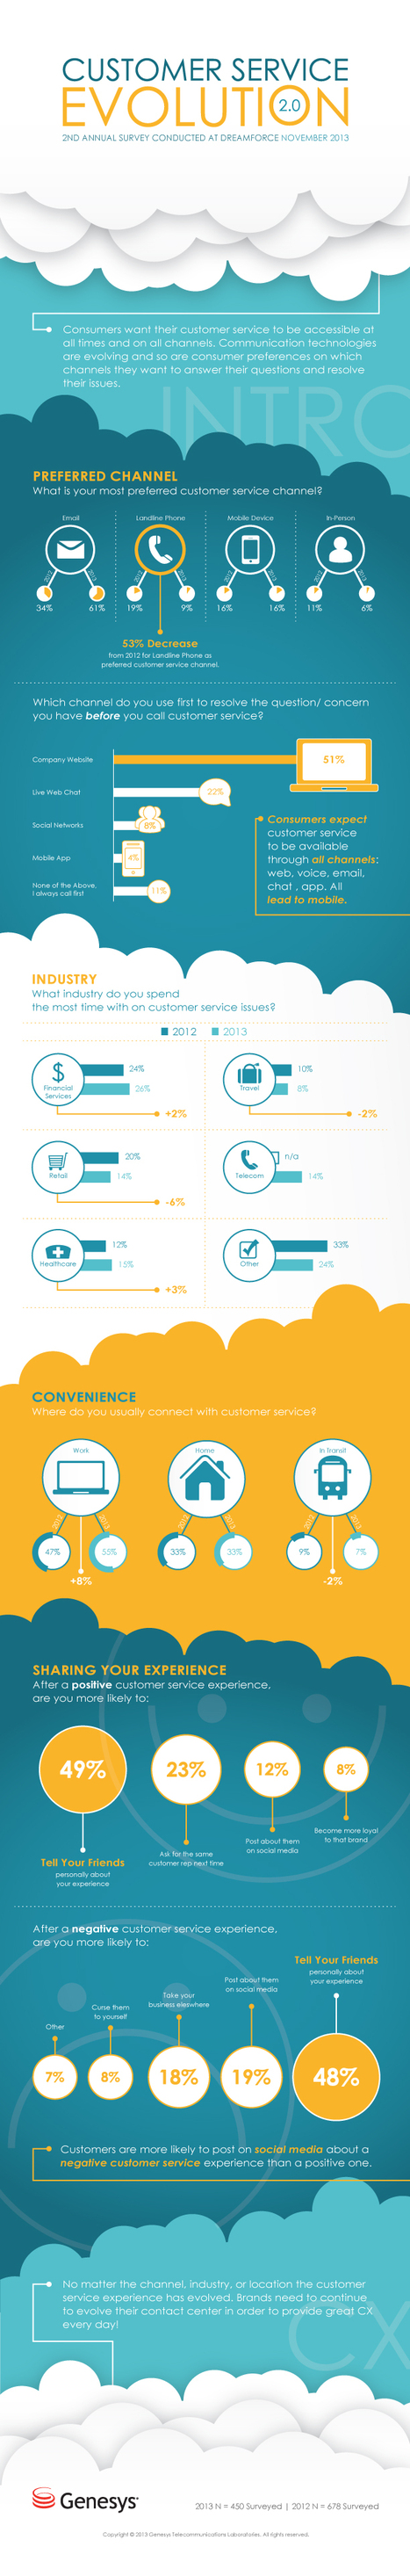 Survey Results on Customer Service Channel Evolution [Infographic] | Online customer care insights | Scoop.it